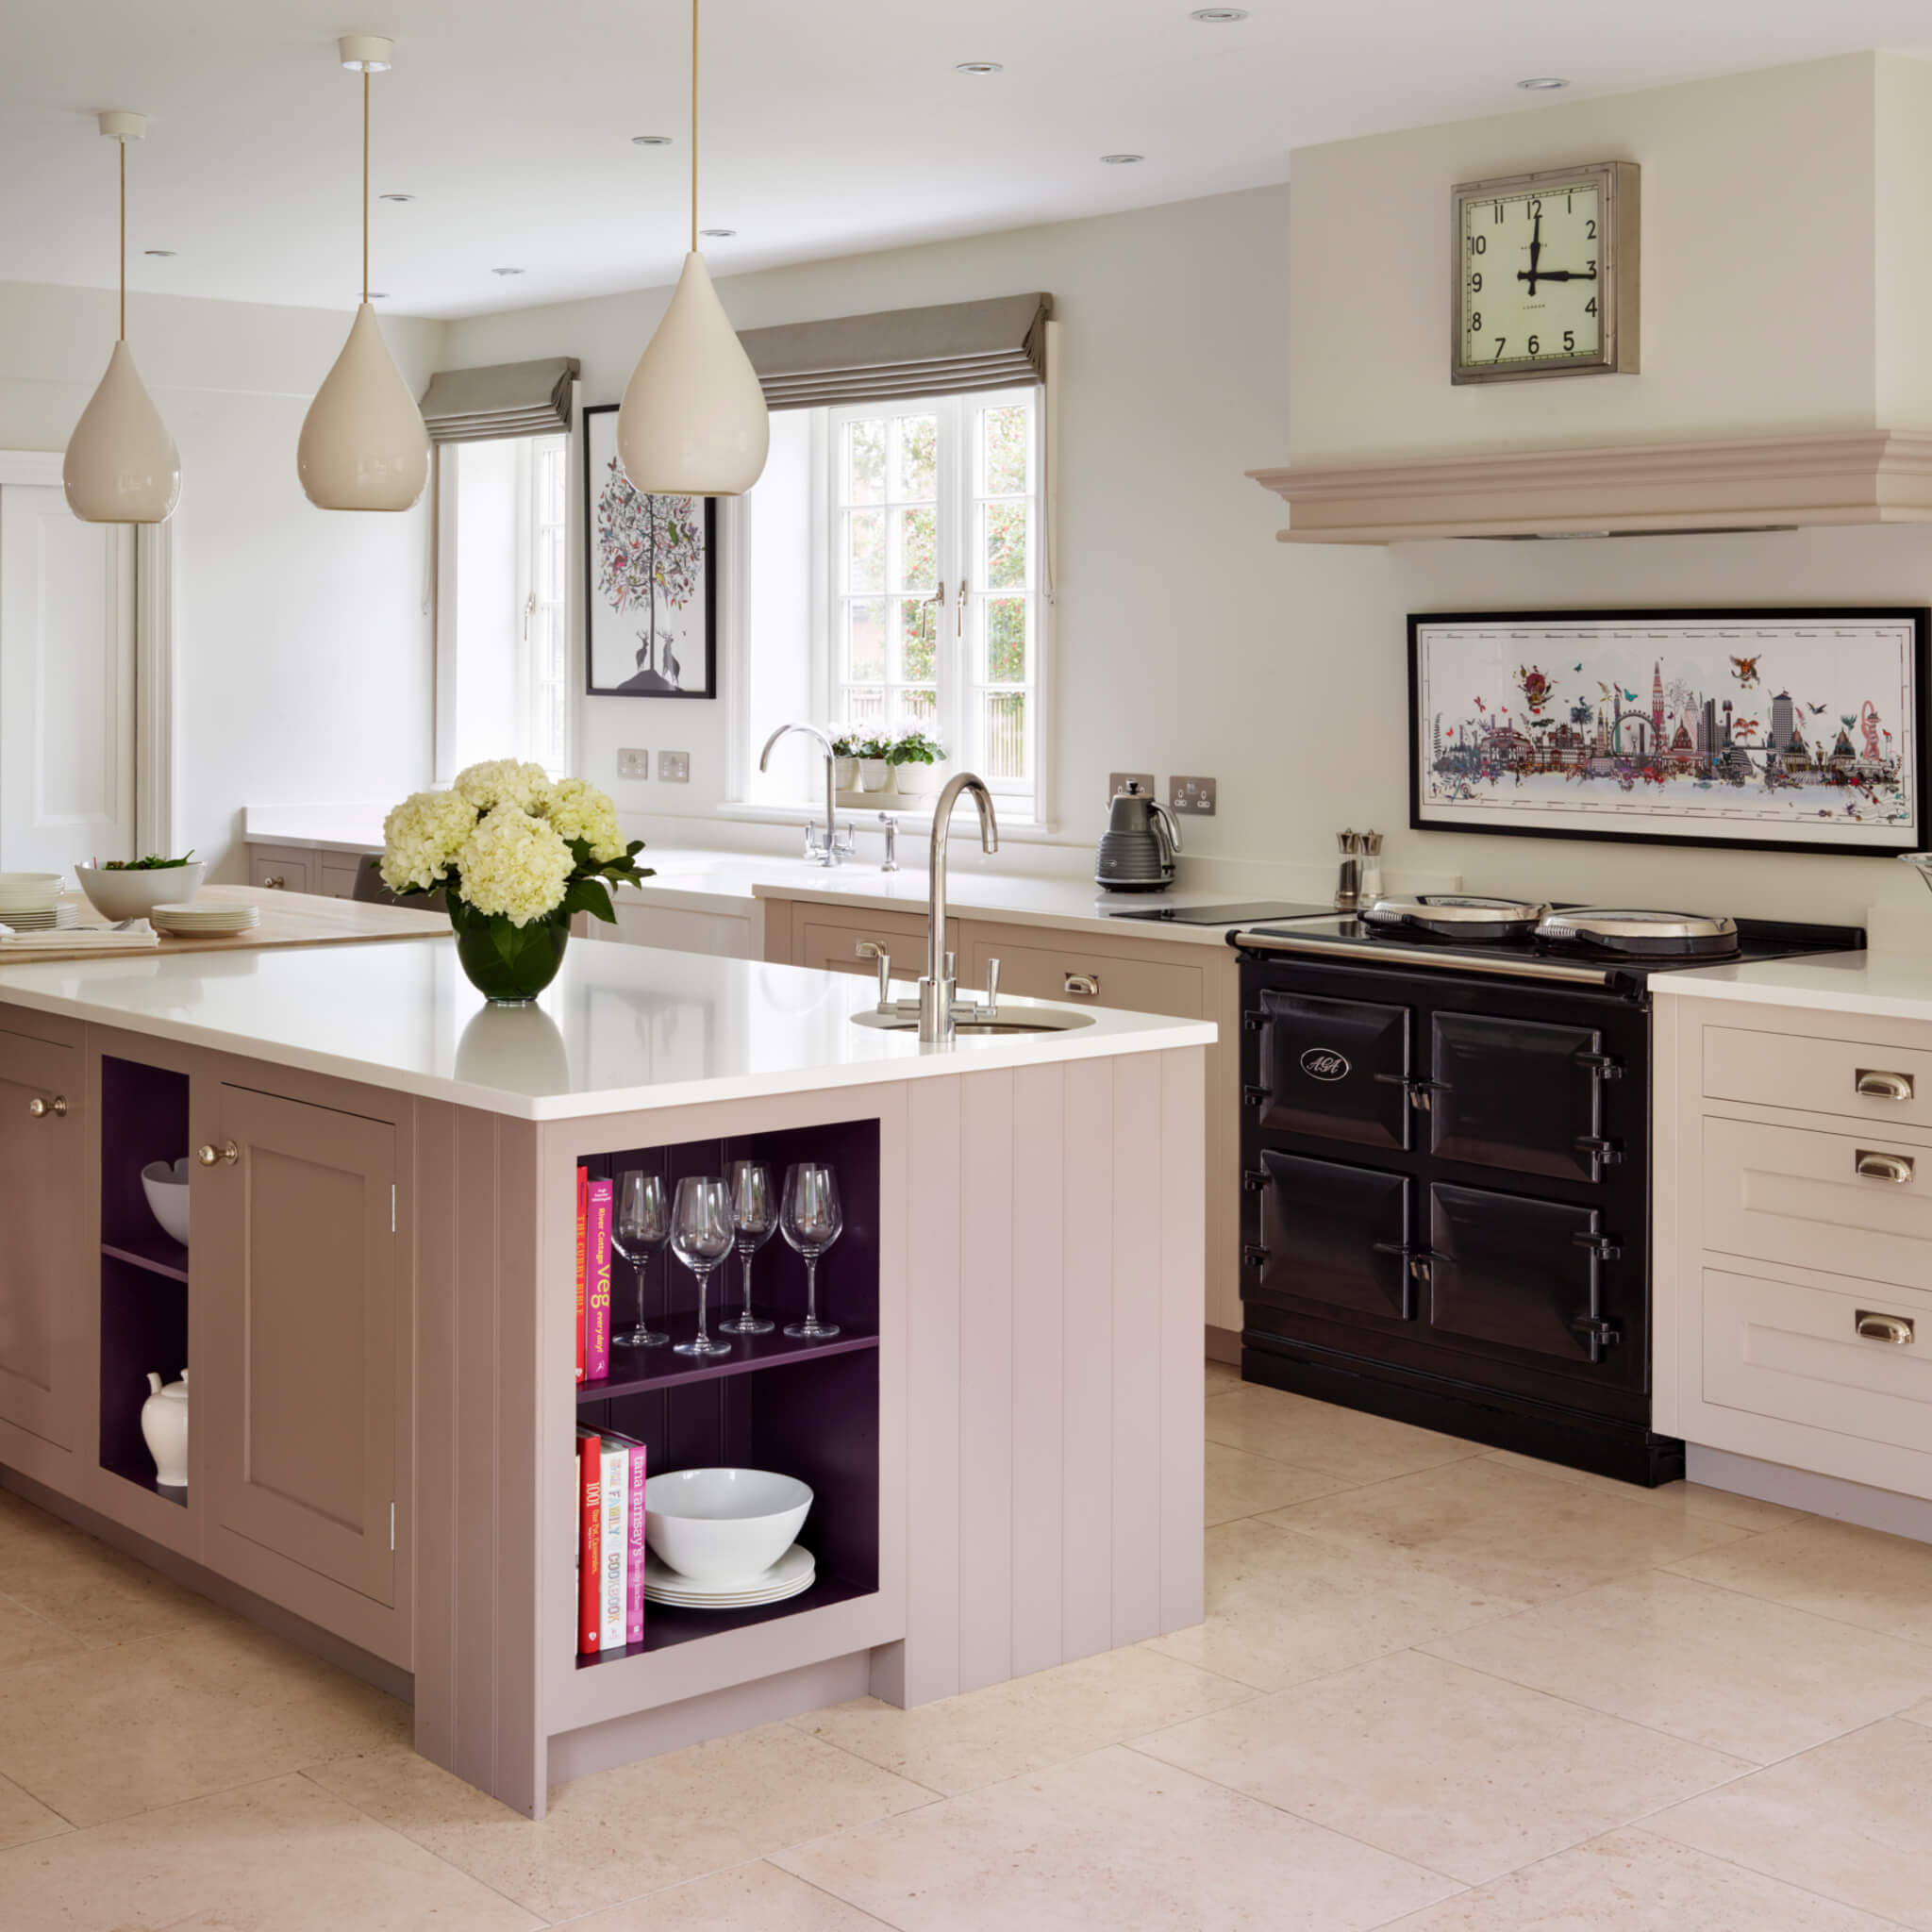 Shape Up Examining Layouts For Your New Kitchen Design